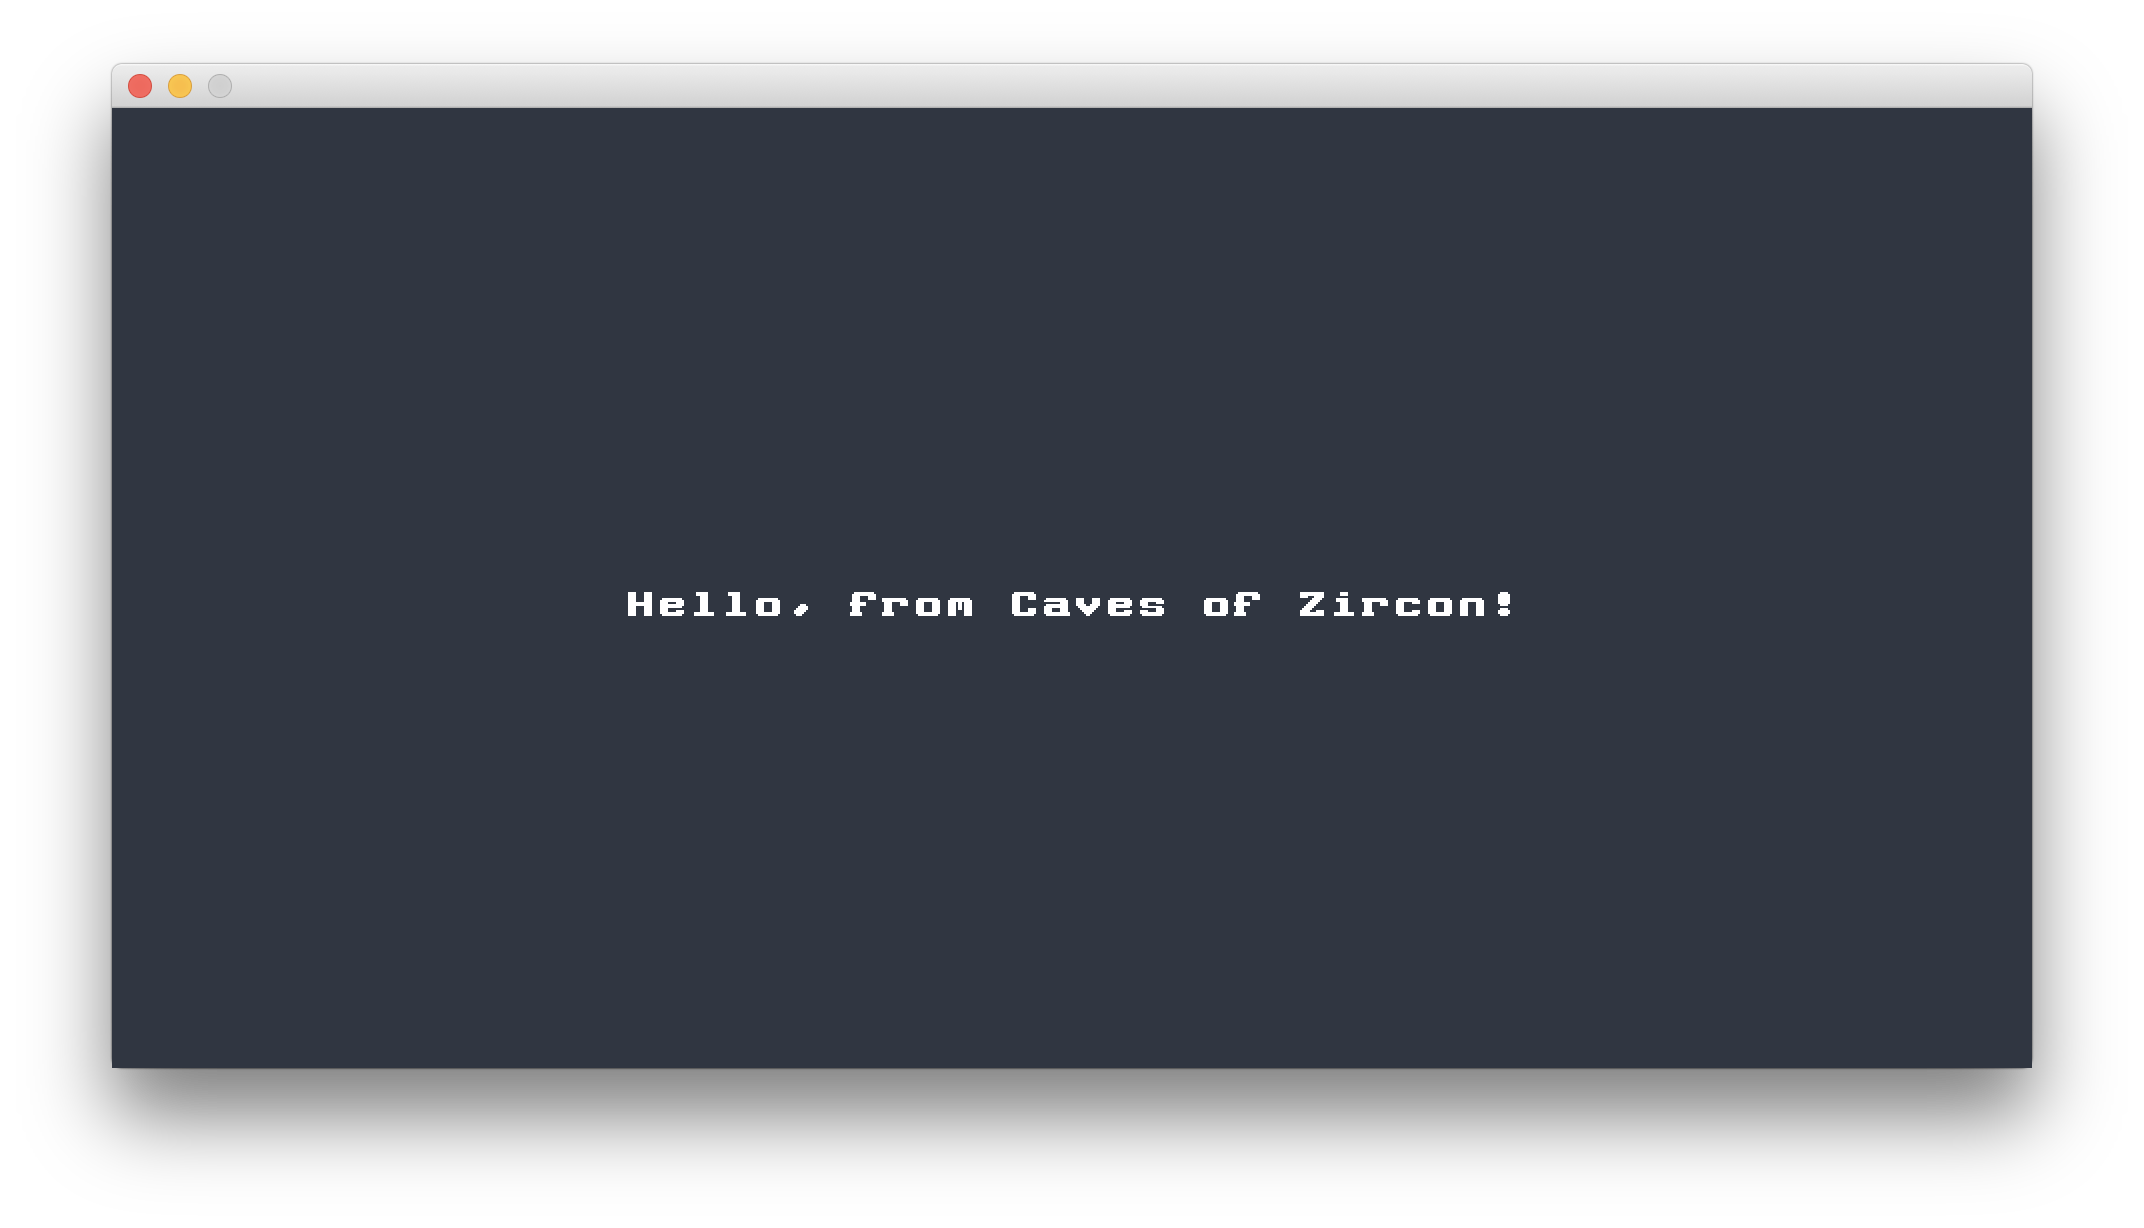 Hello, from Caves of Zircon